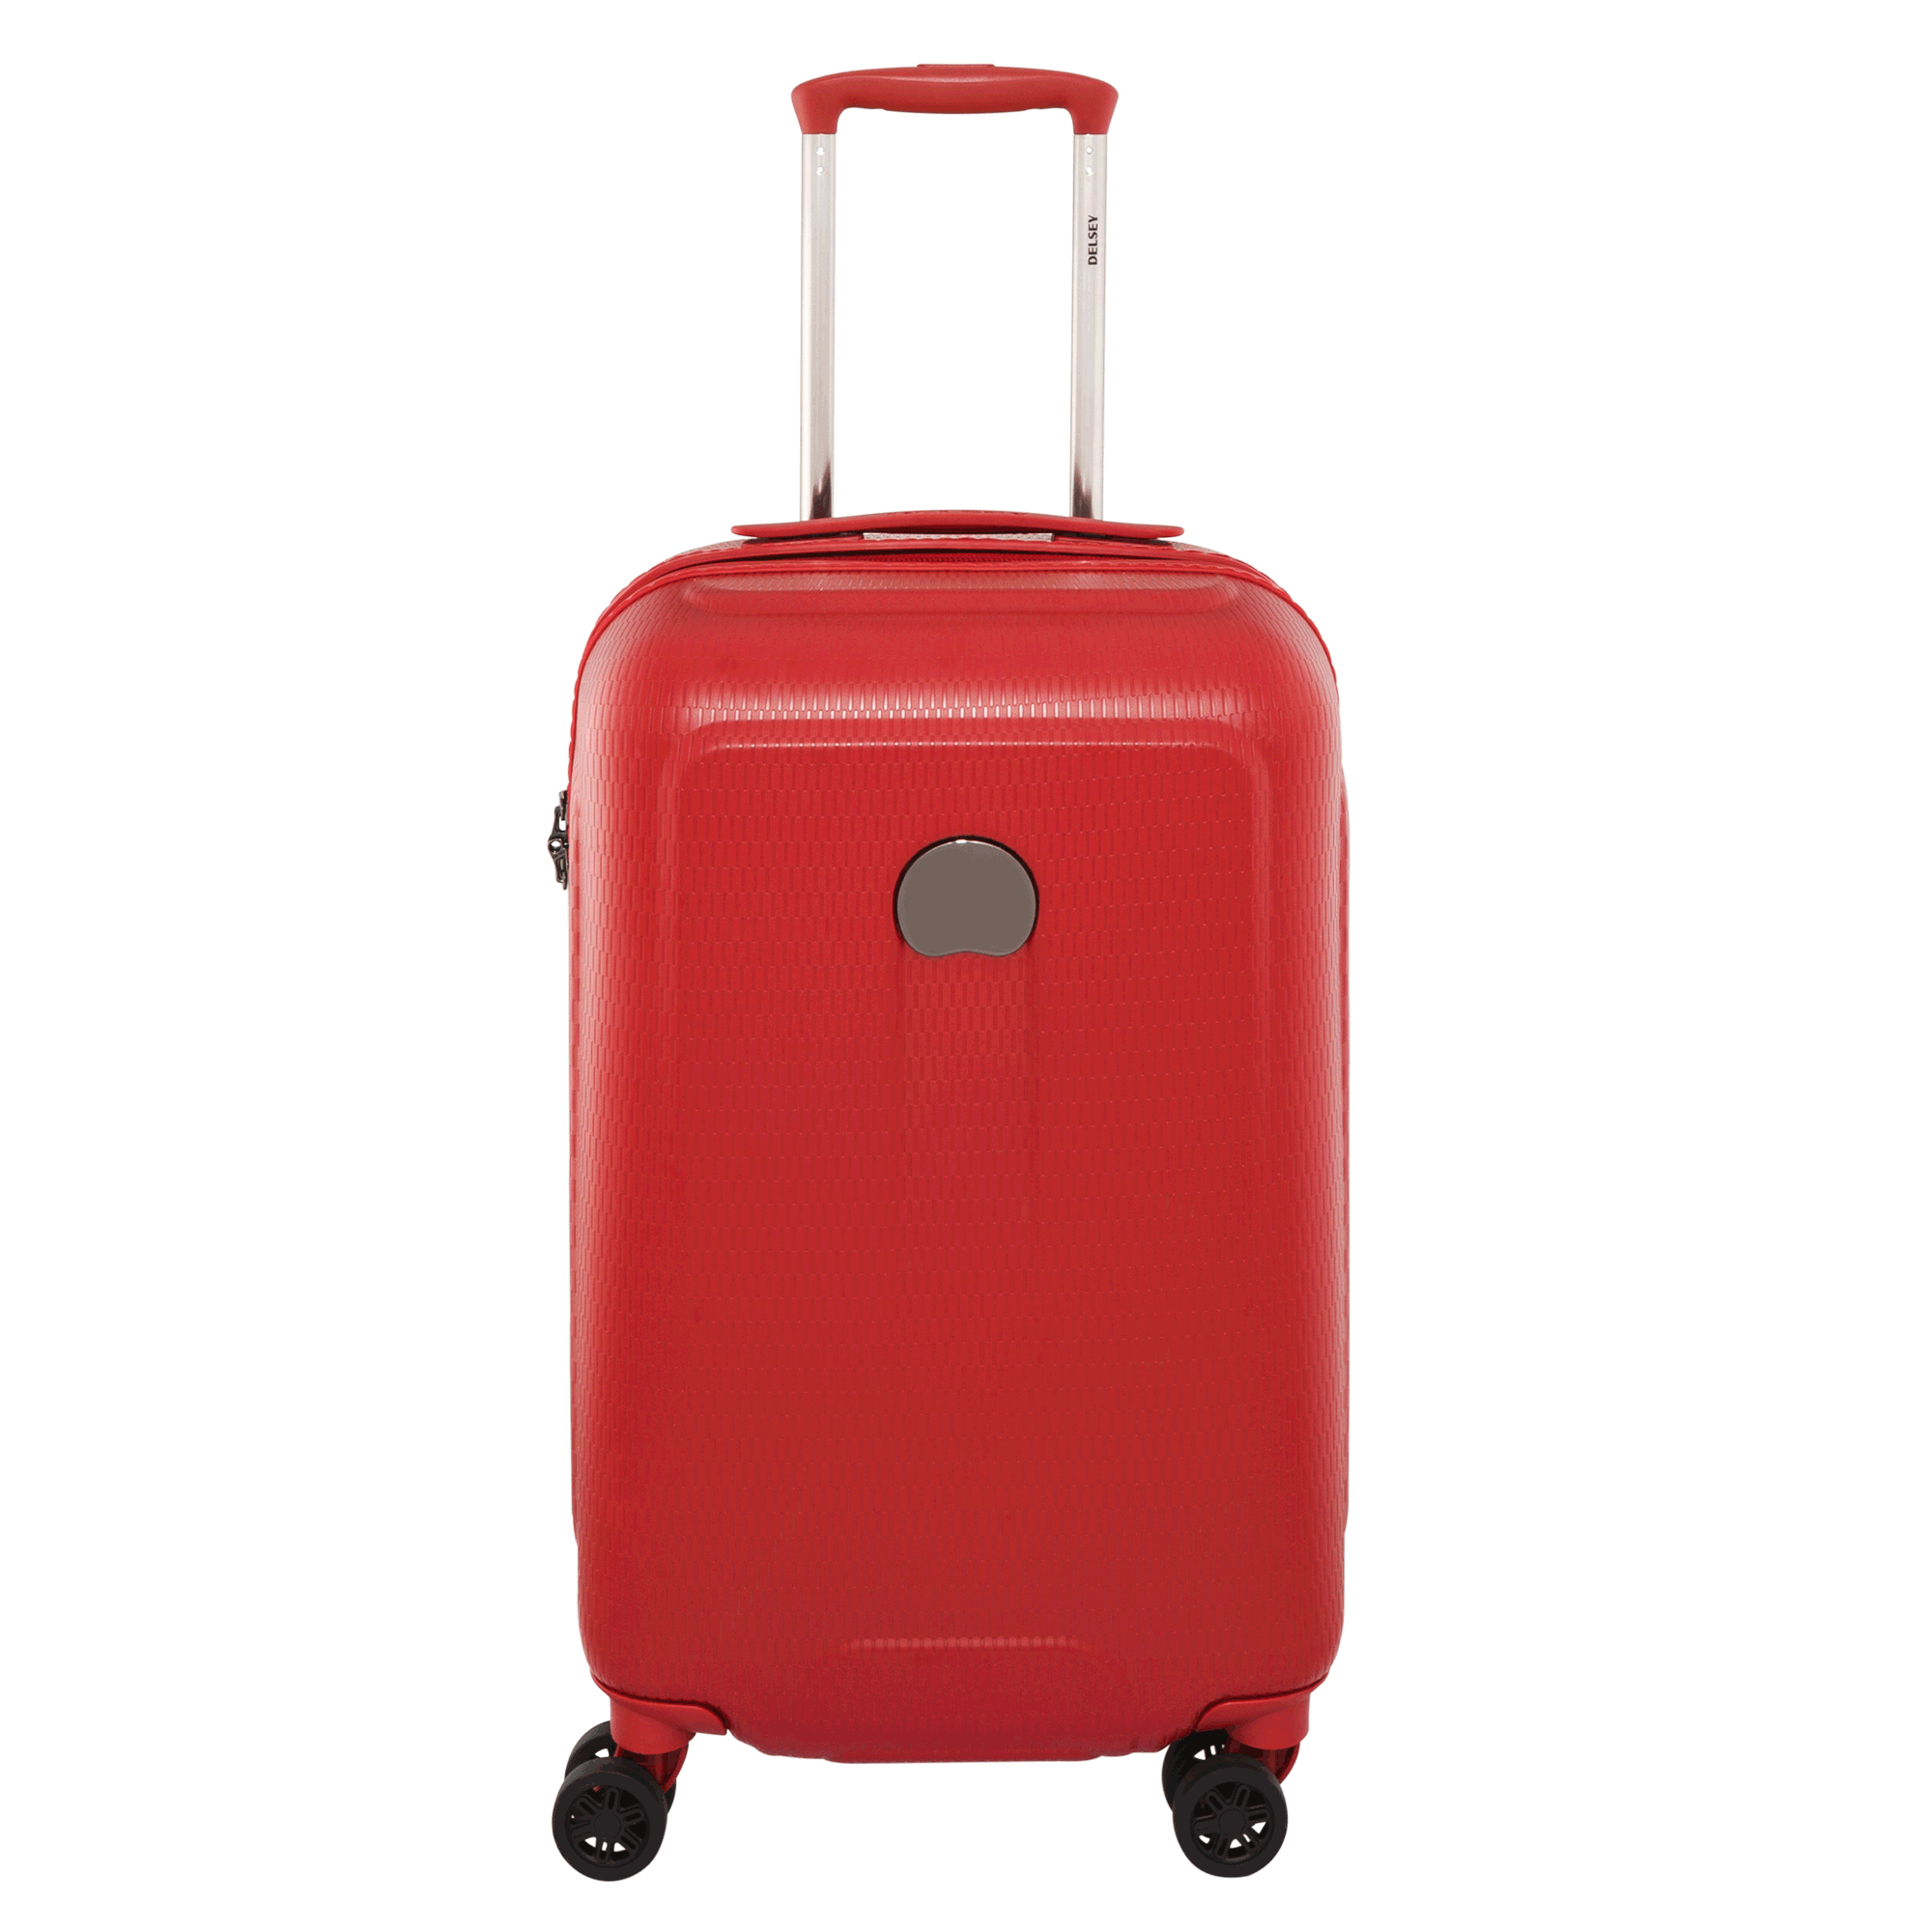 Luggage clipart pink suitcase, Luggage pink suitcase.